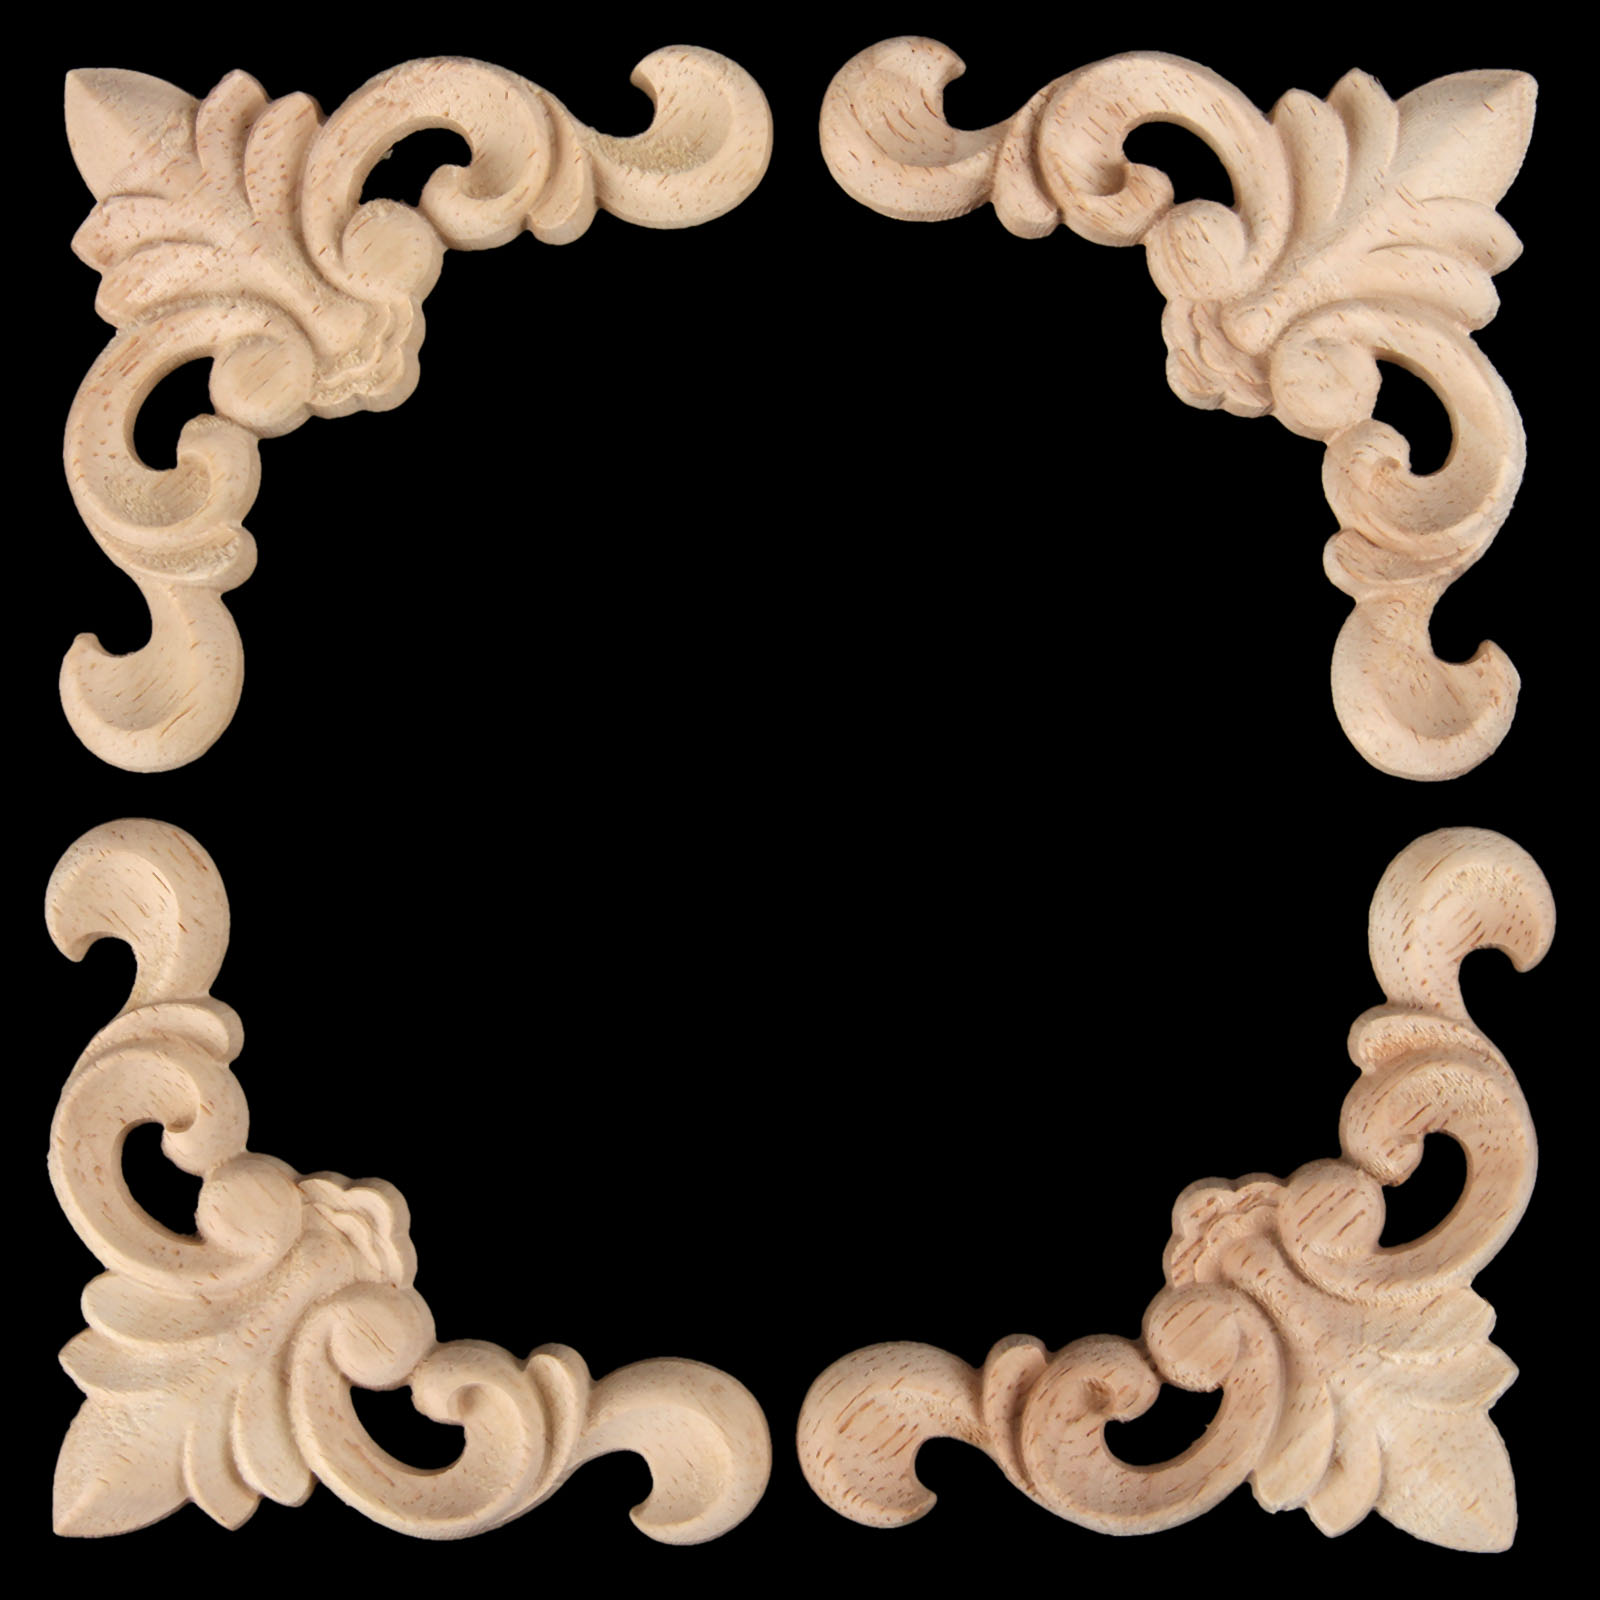 1Pc Woodcarving Decal Corner Applique Frame Door Decorate Wall Doors Furniture Decorative Figurines Wooden Miniatures 8x8cm russian lacquer miniatures